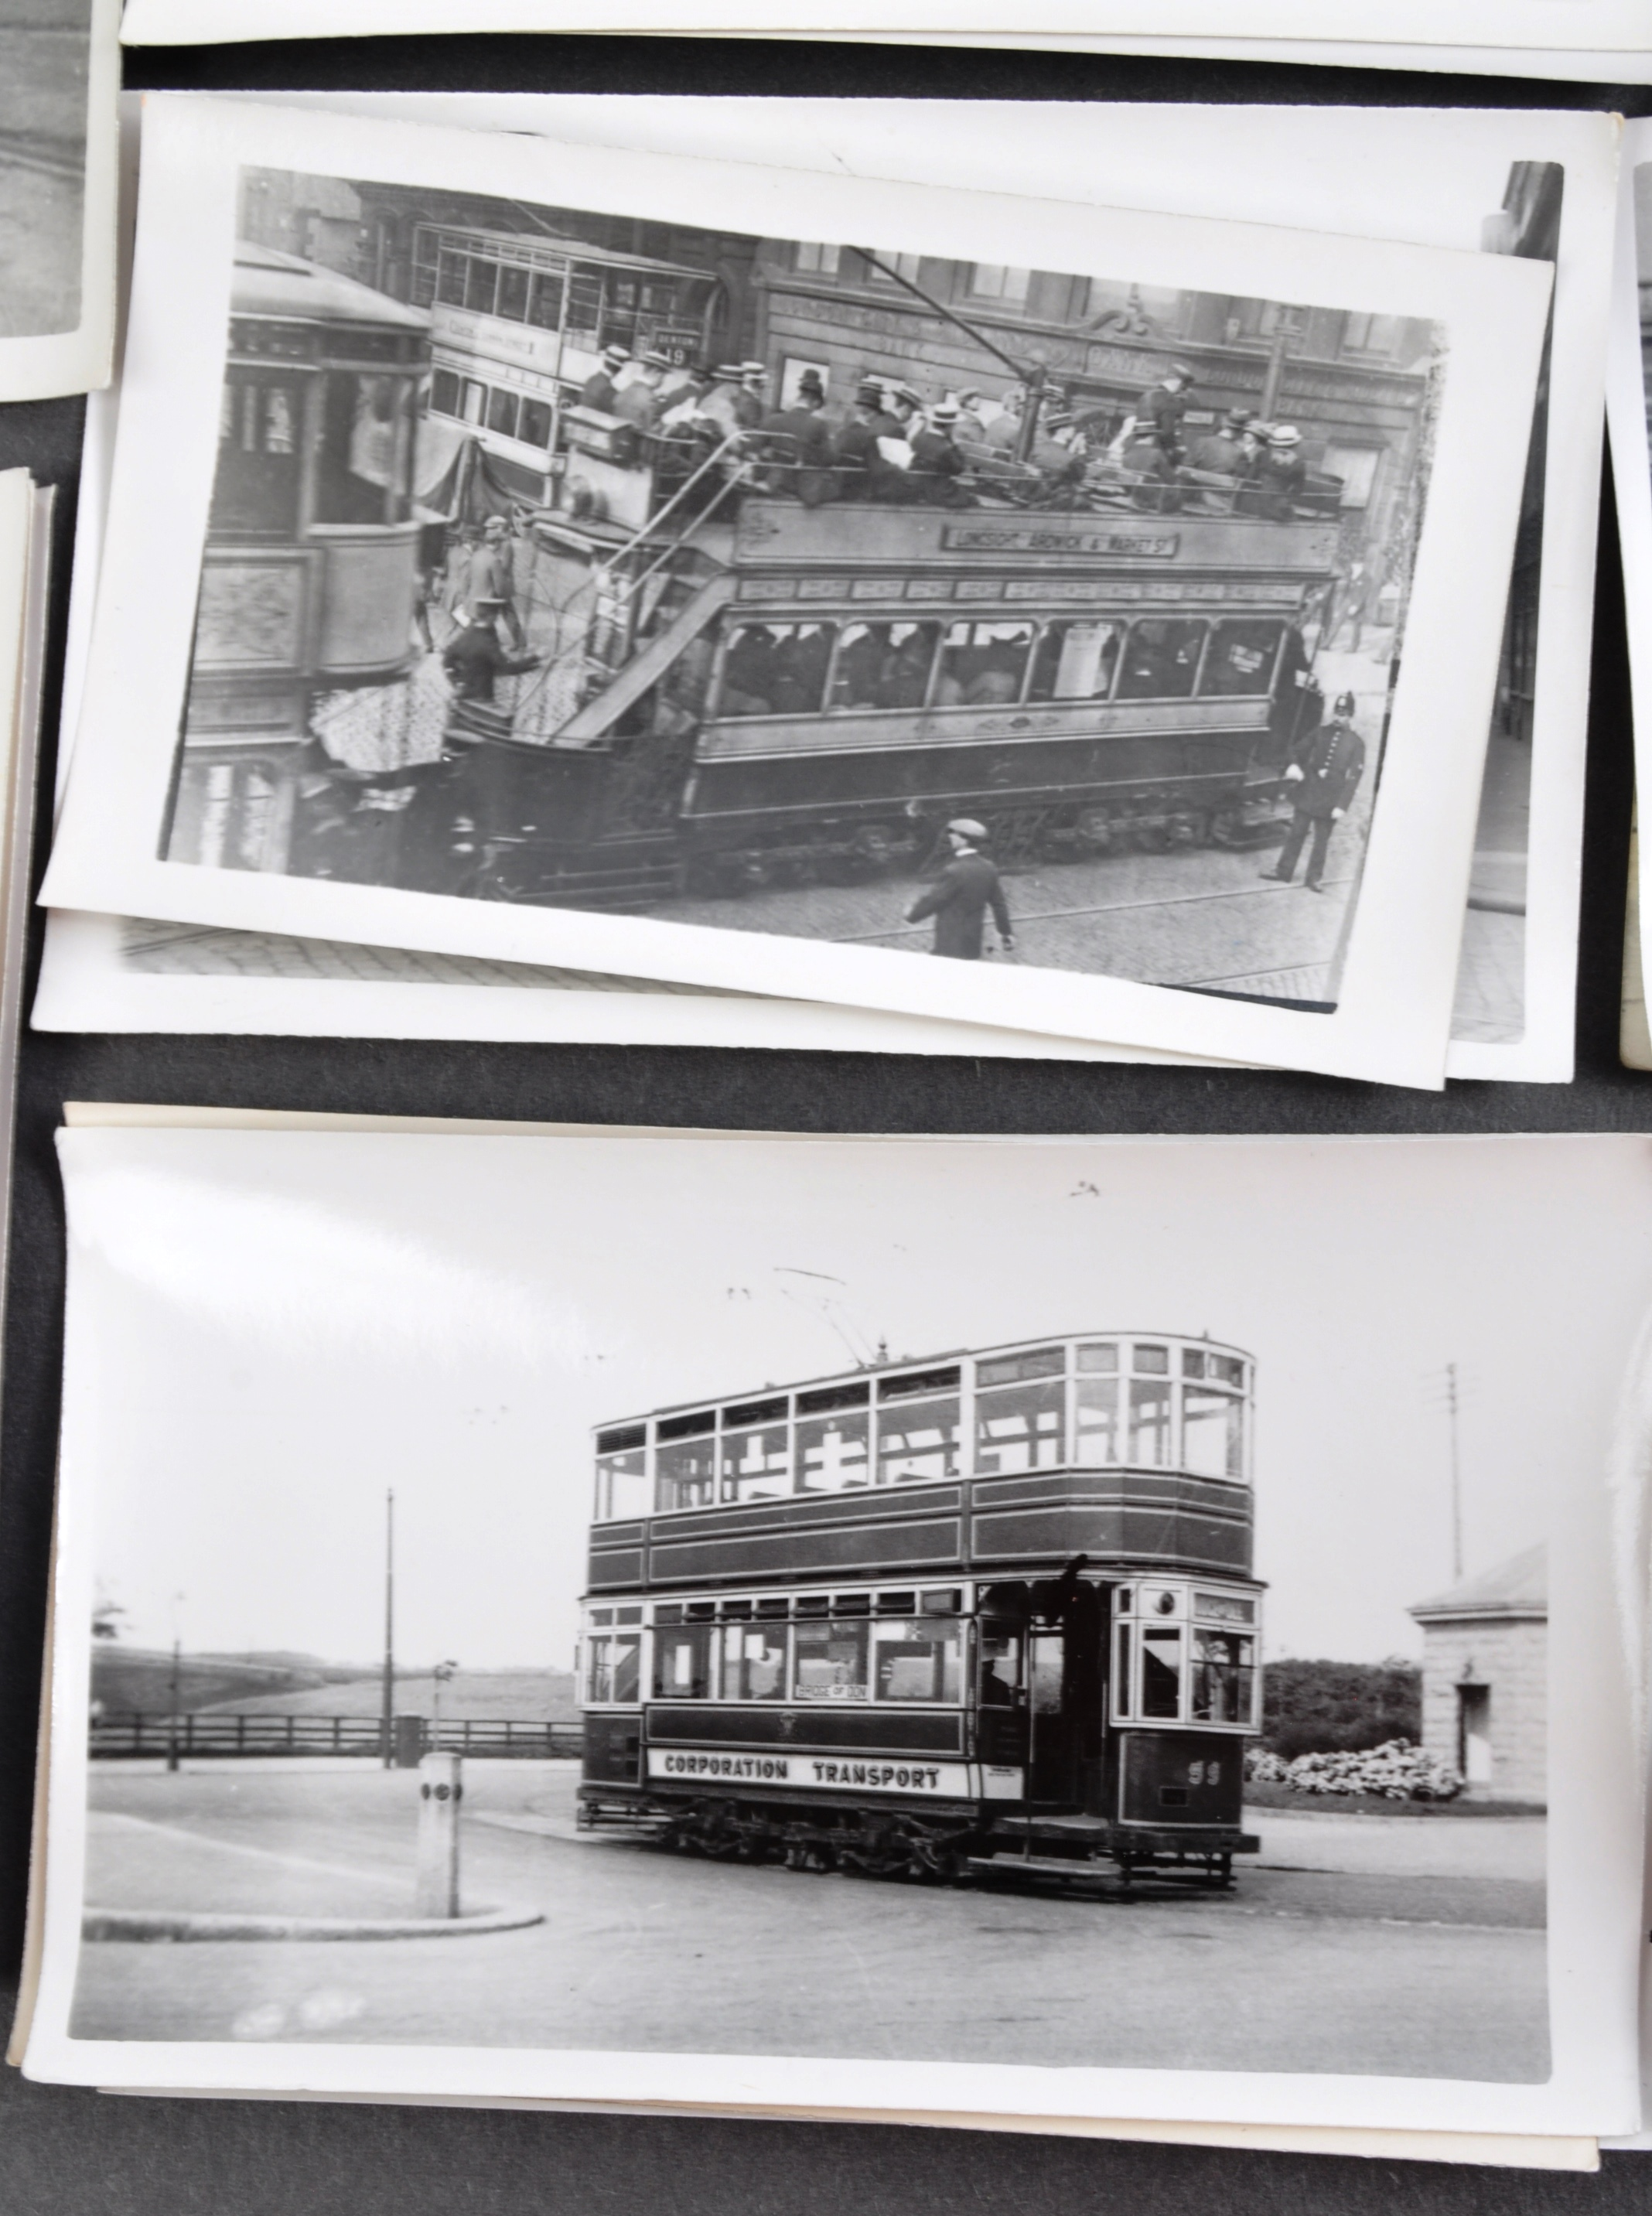 TRAMS & TROLLEY BUSES - LARGE COLLECTION OF BLACK AND WHITE PHOTOS - Image 6 of 9